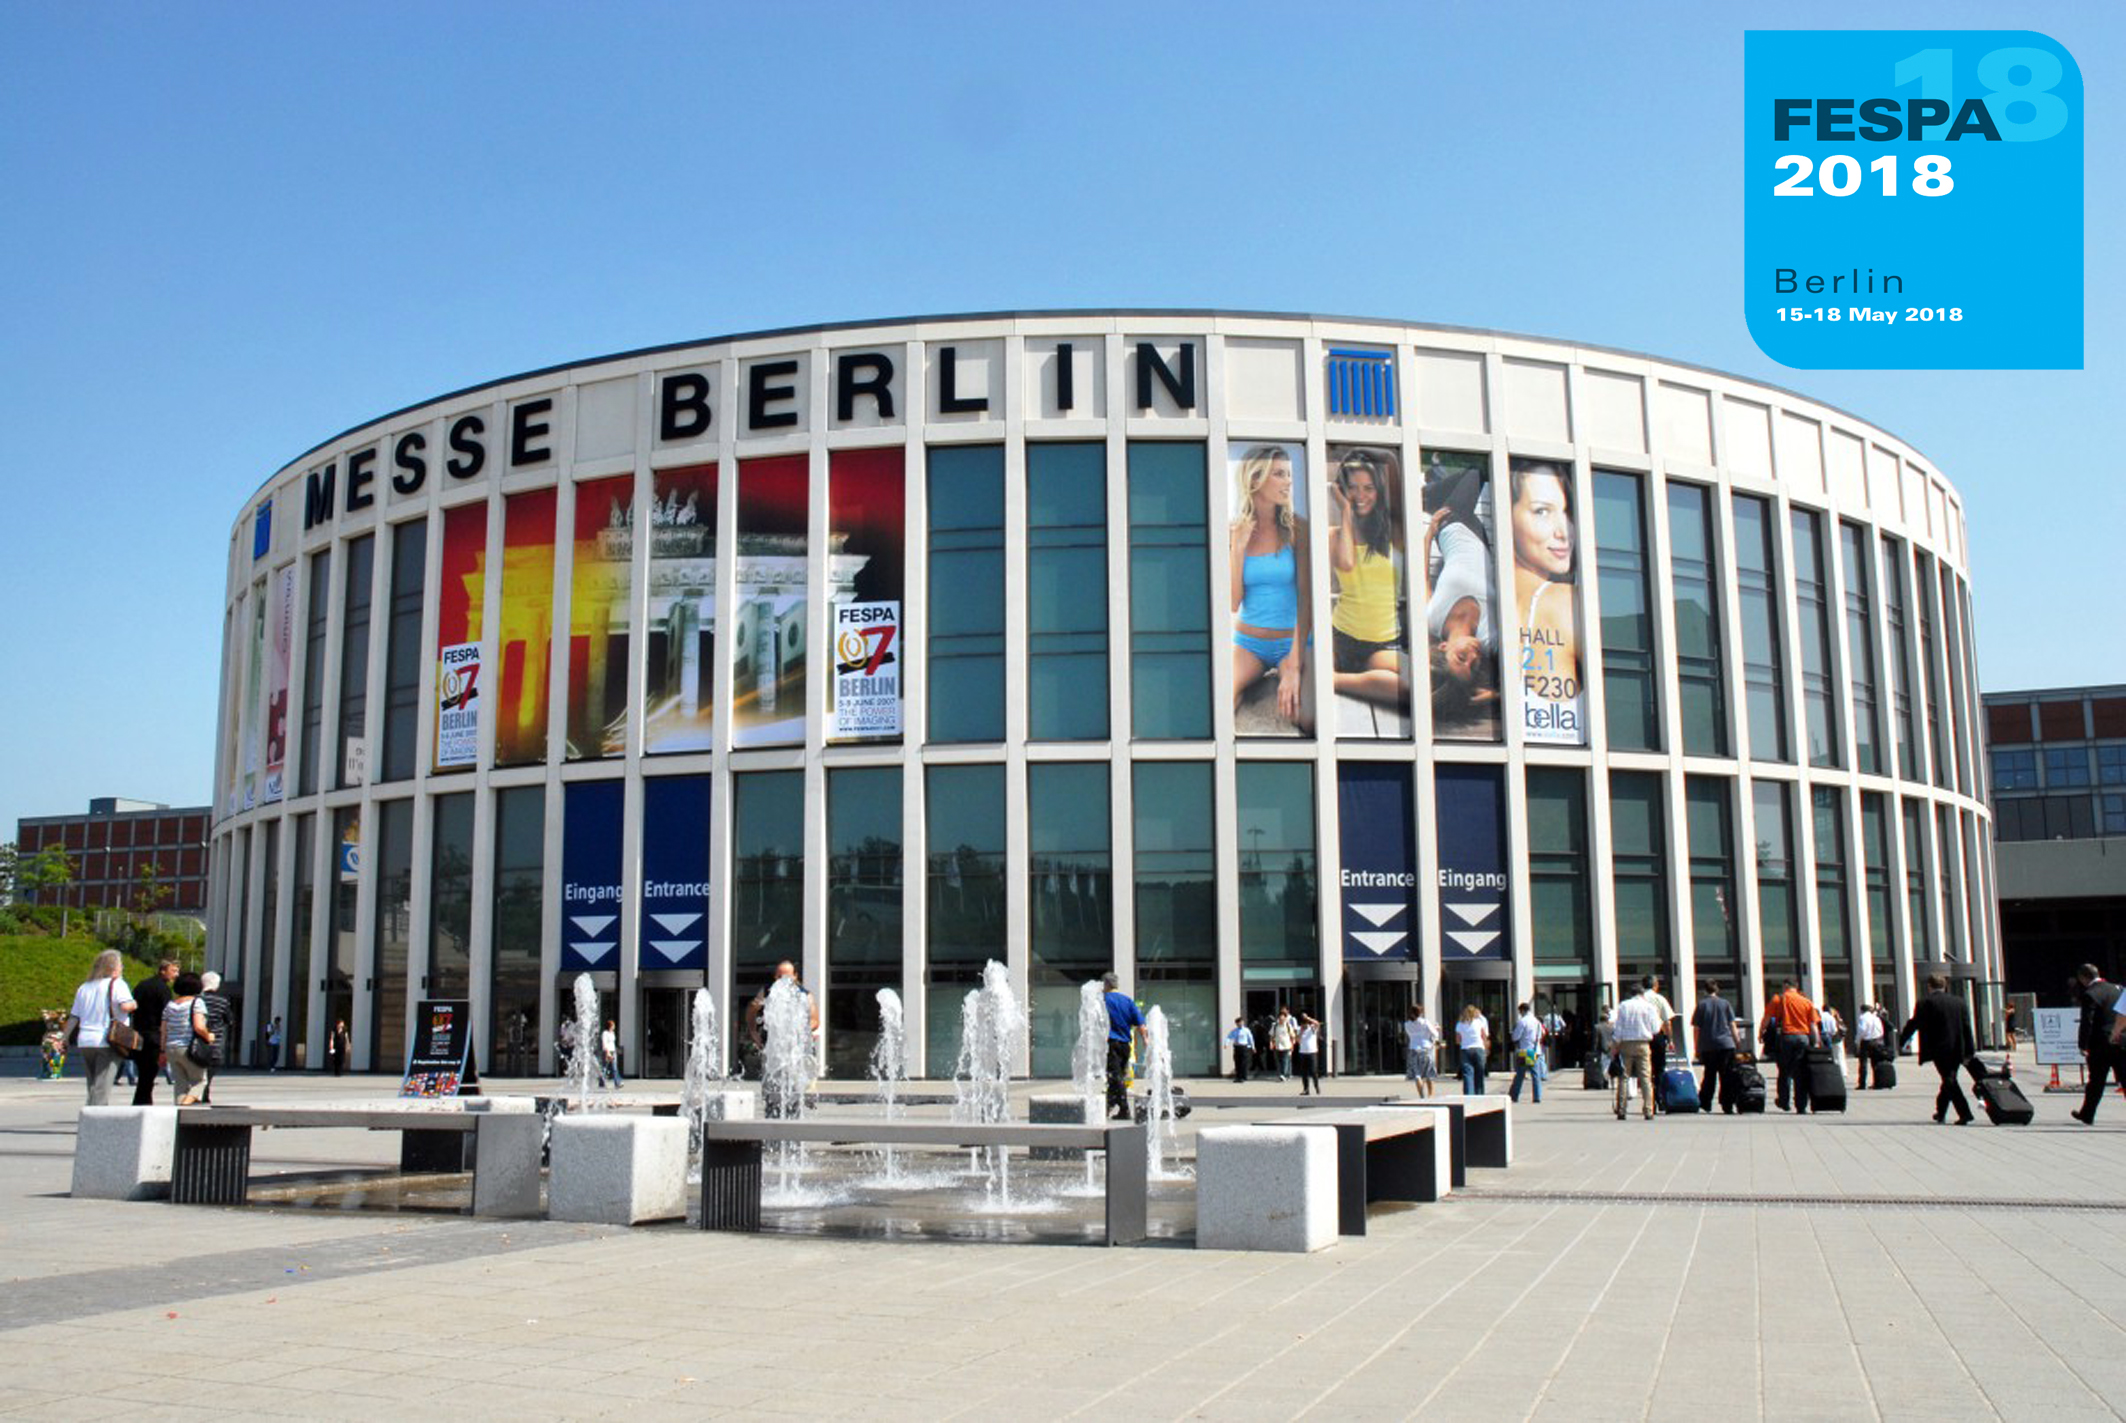 FESPA announces dates for 2018 Global Print Expo, Berlin, Germany